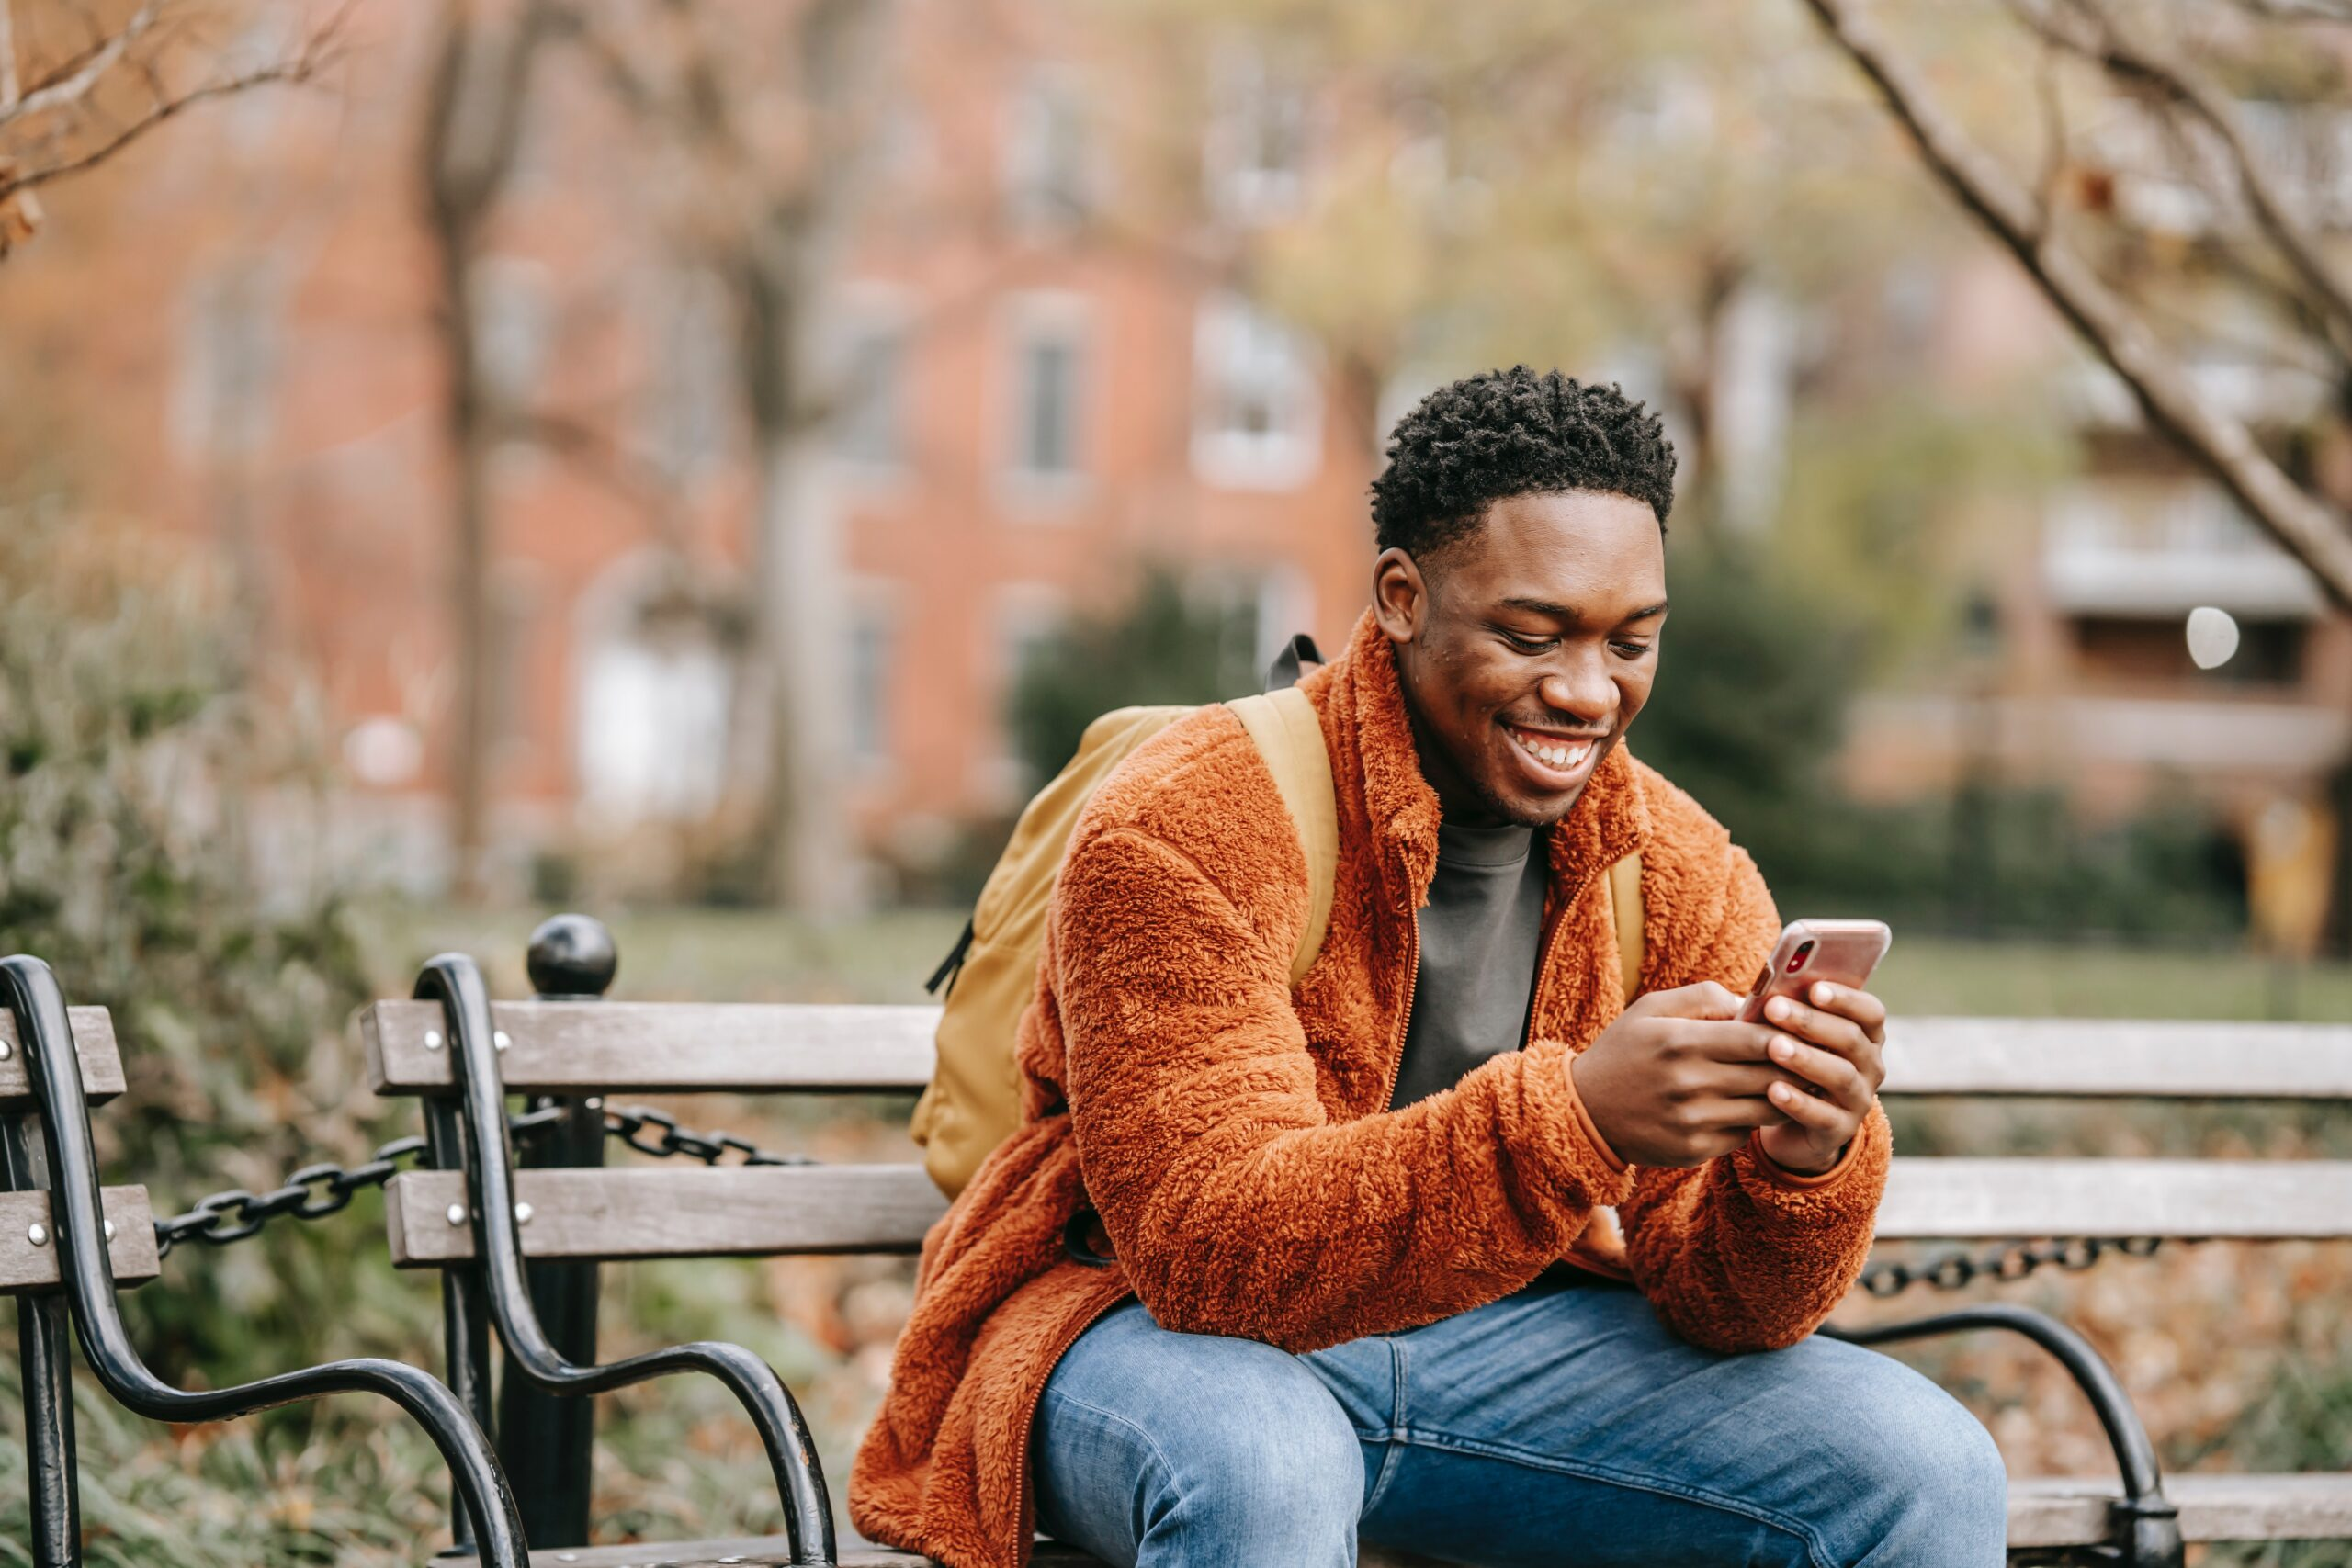 Man smiling at his phone on park bench.